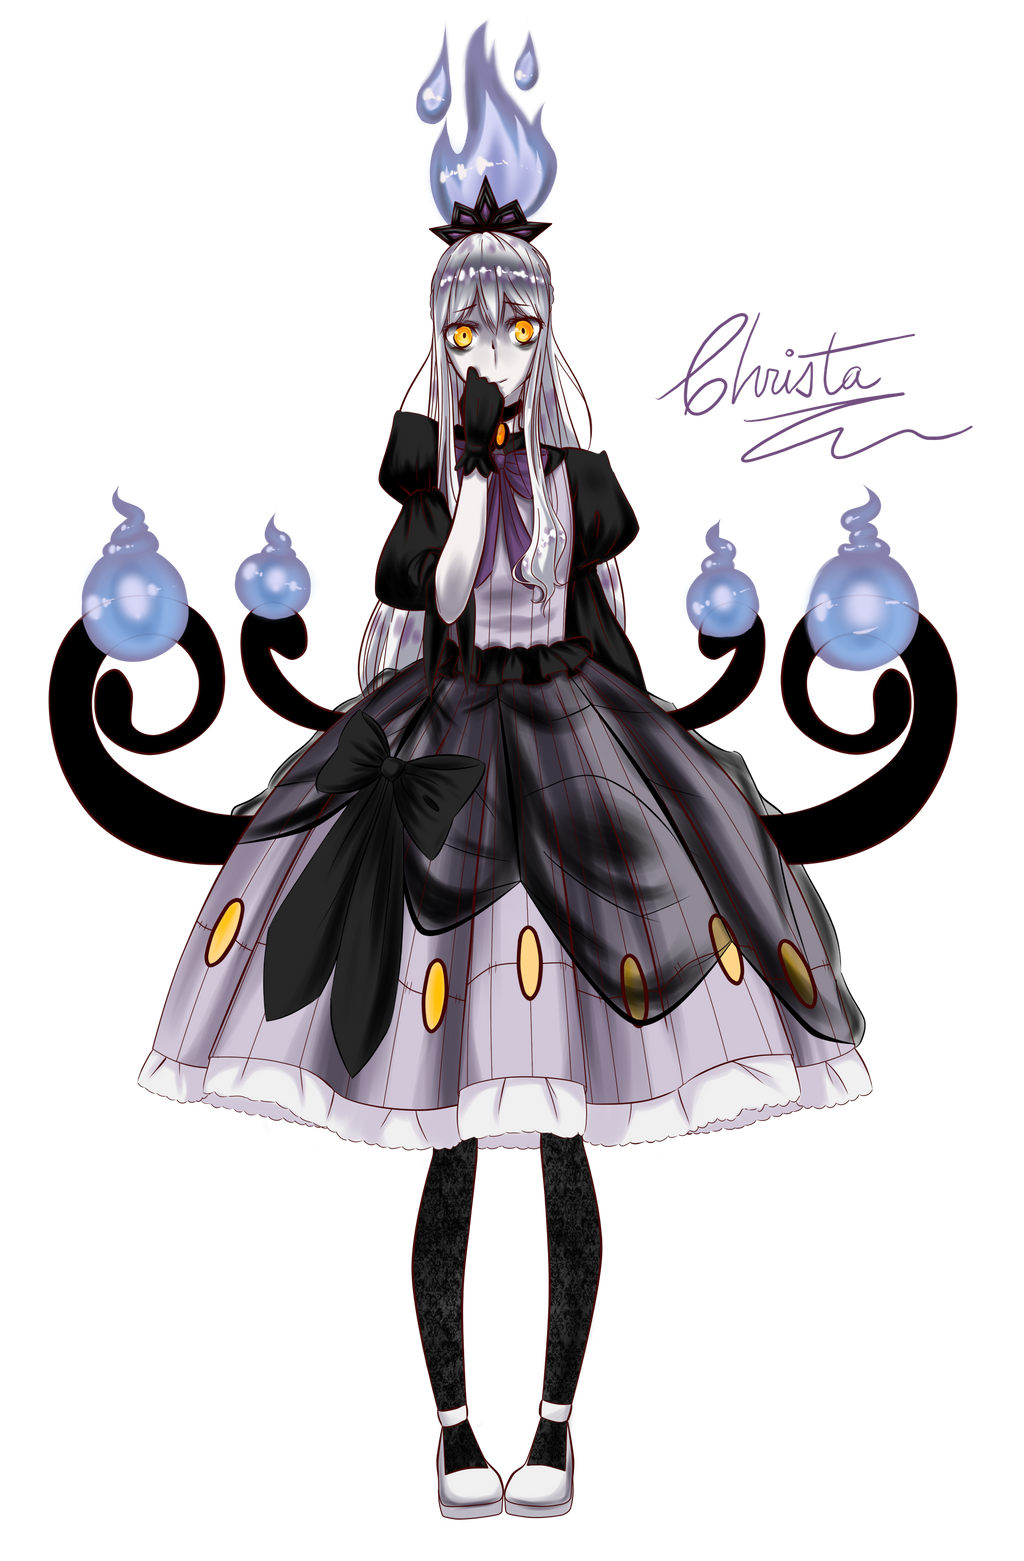 2nd Chandelure Gijinka by xhikkux on DeviantArt